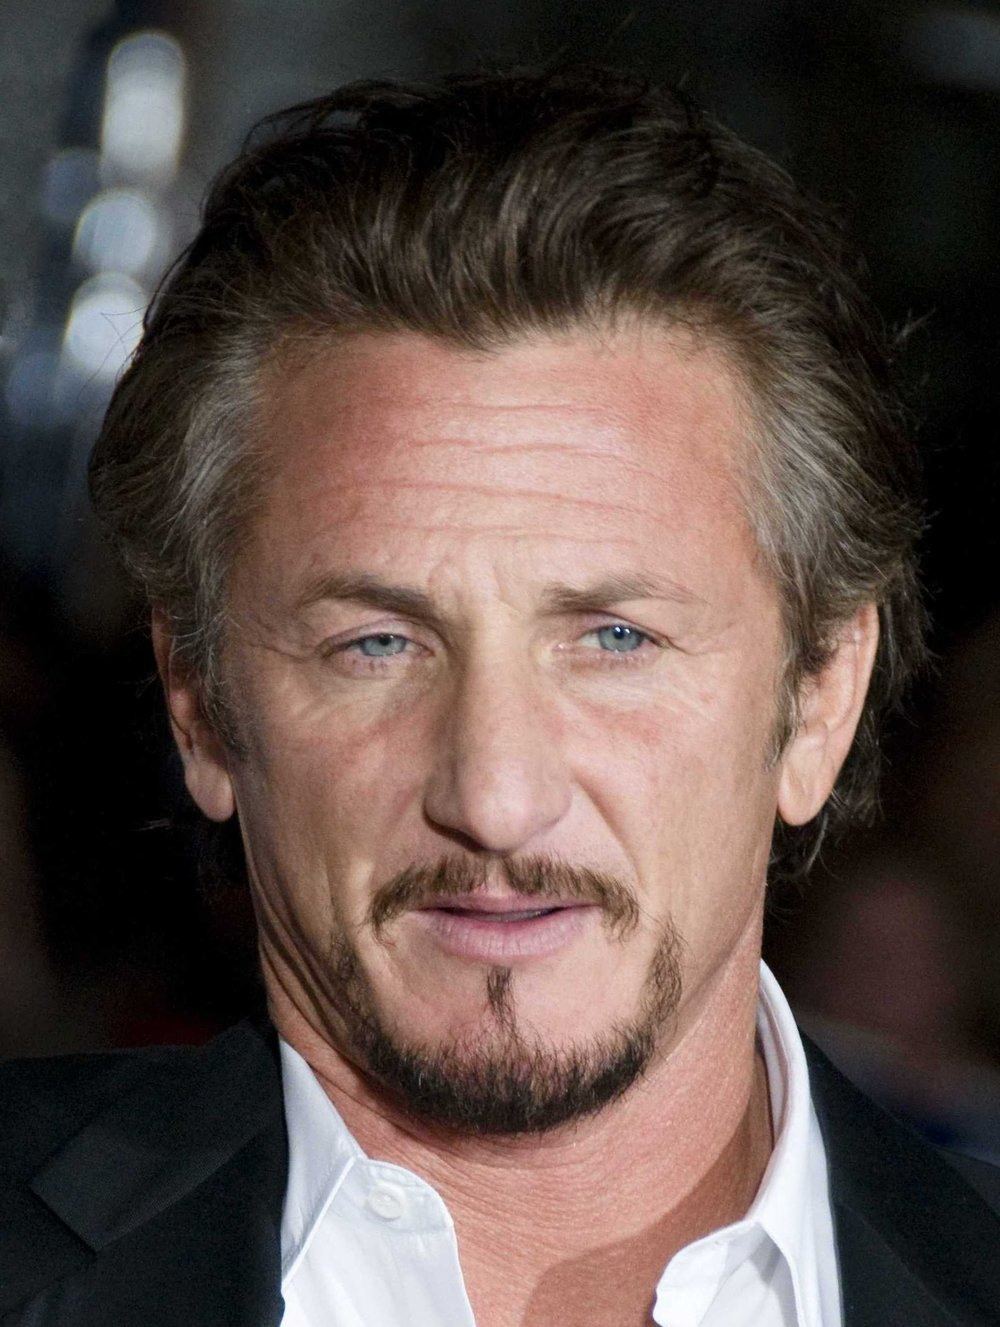 Sean Penn. Credit: Wikimedia Commons.